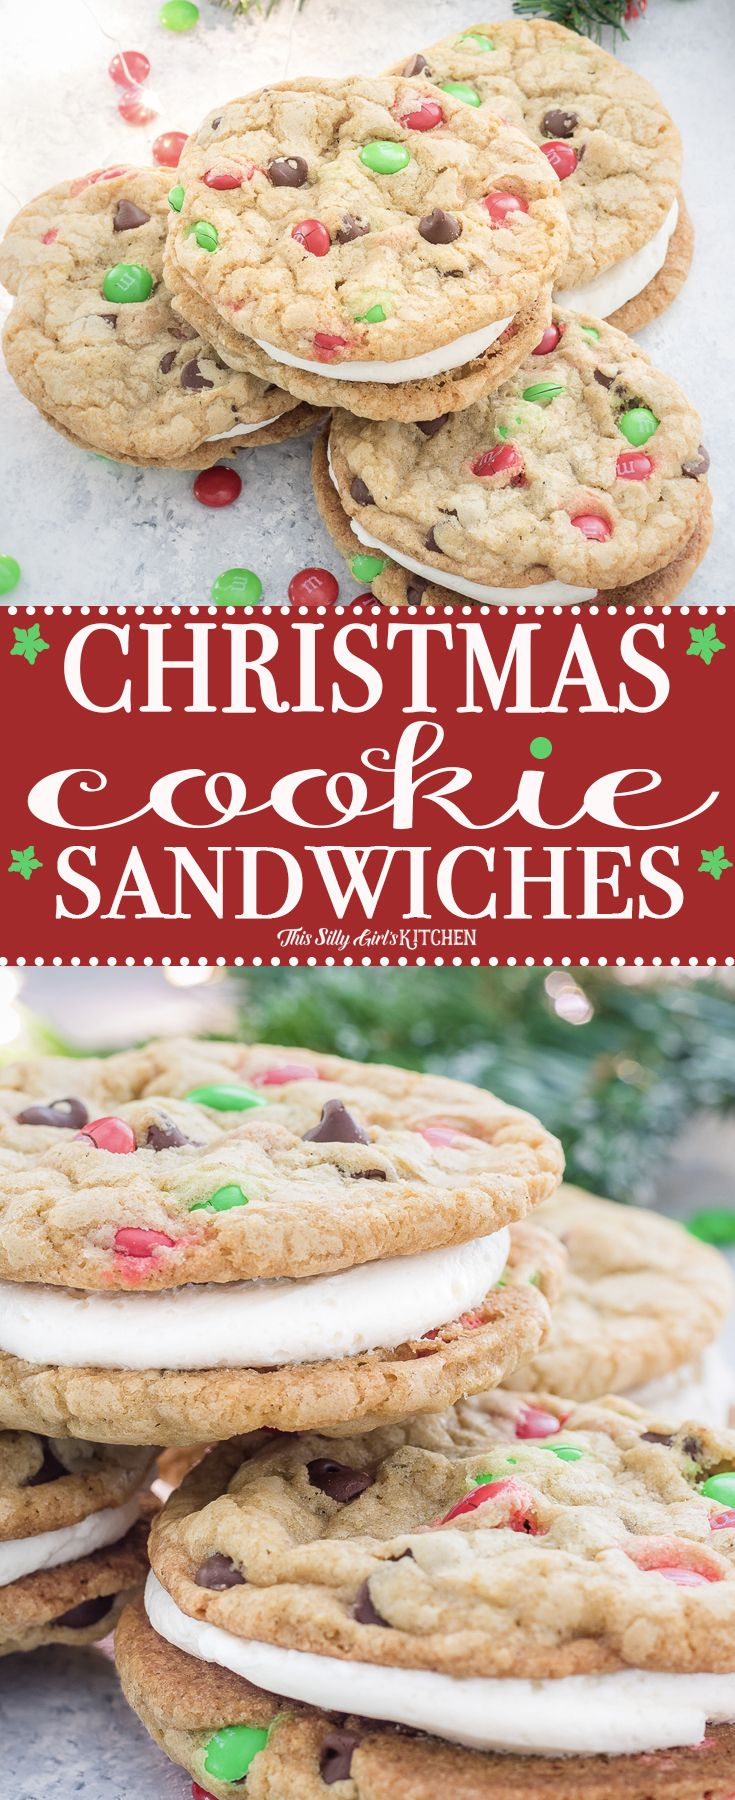 Perfect for Santa - Christmas Cookie Sandwiches, the fluffiest buttercream frosting sandwiched between two soft and chewy chocolate chip cookies loaded with holiday M&M's!